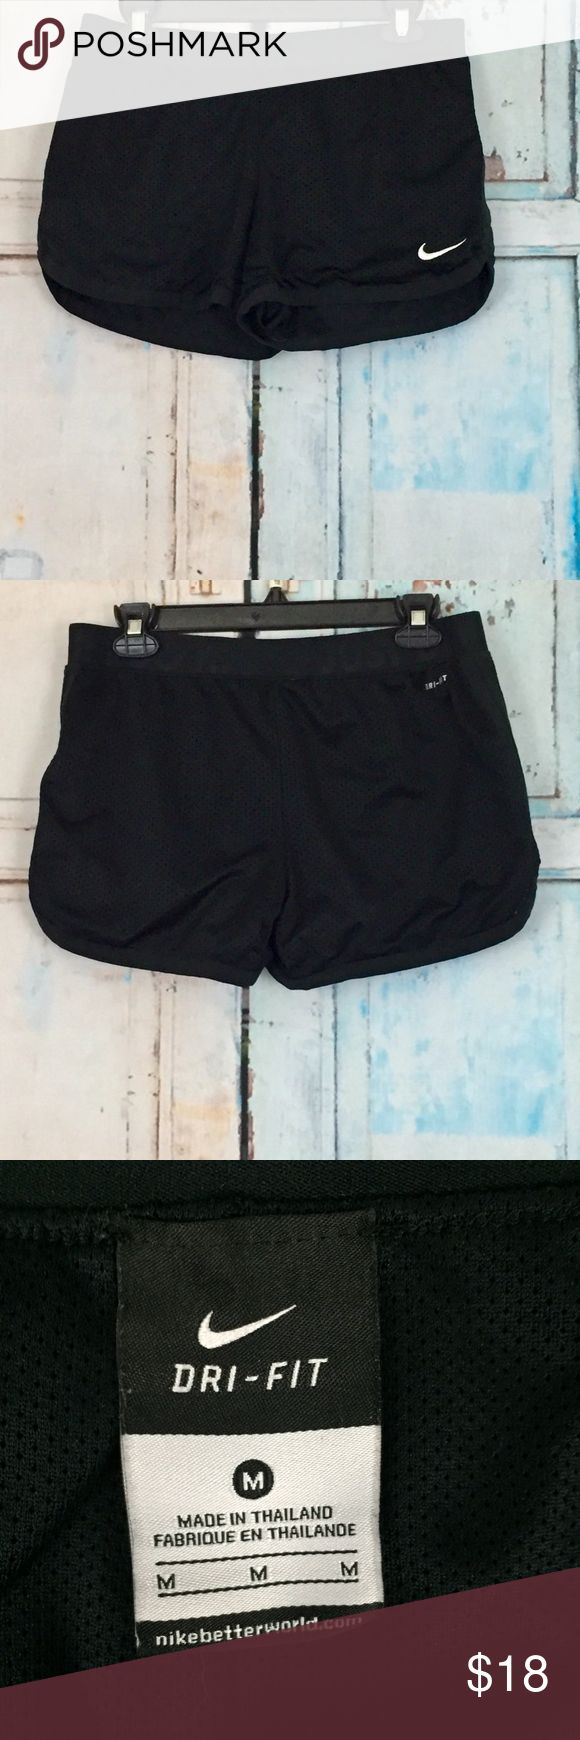 Nike Dri fit shorts Nike Dri fit shorts. Super comfy black nike jogging shorts. Jersey material that is lined. Size is Medium. Fabric is 100% polyester. Nike Shorts